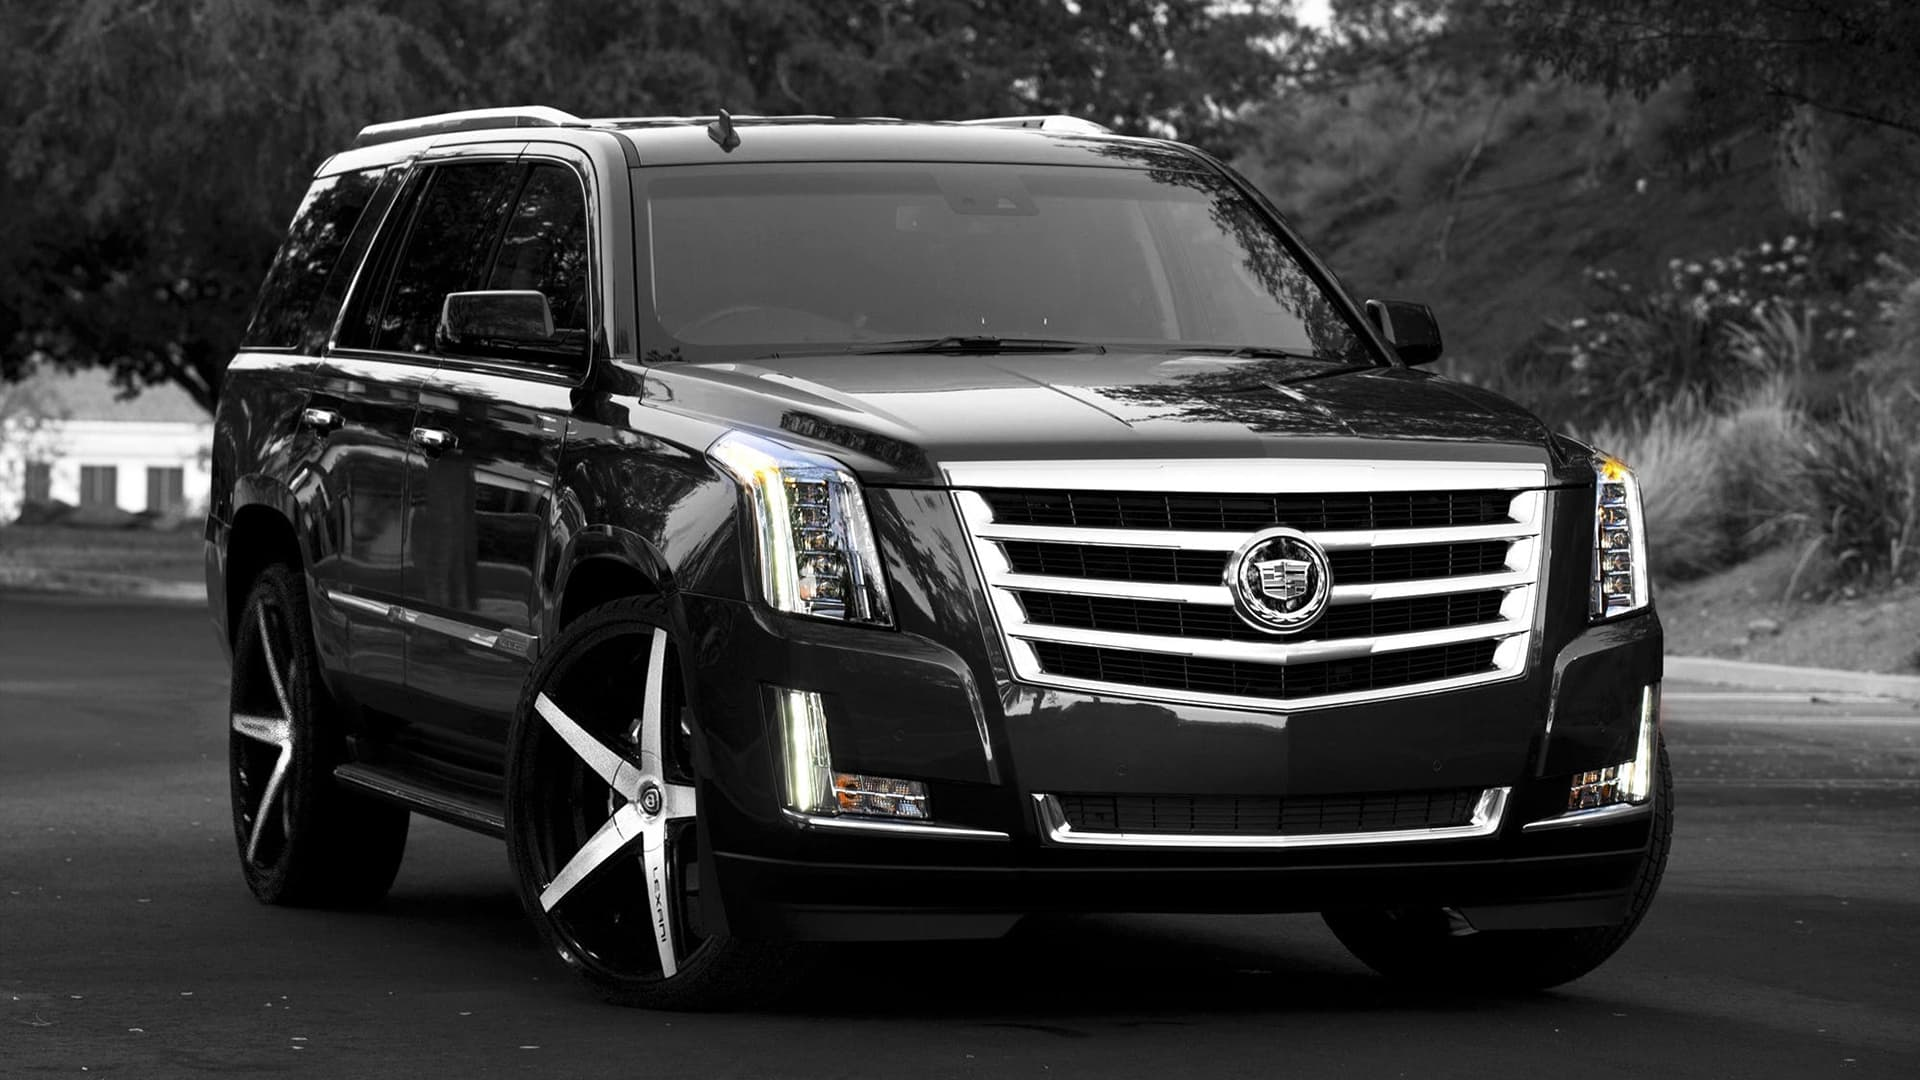 black 2015 cadillac escalade high resolution wallpaper 20 cadillac escalade wallpapers hd GM Ignition Fuse Box Connector at soozxer.org